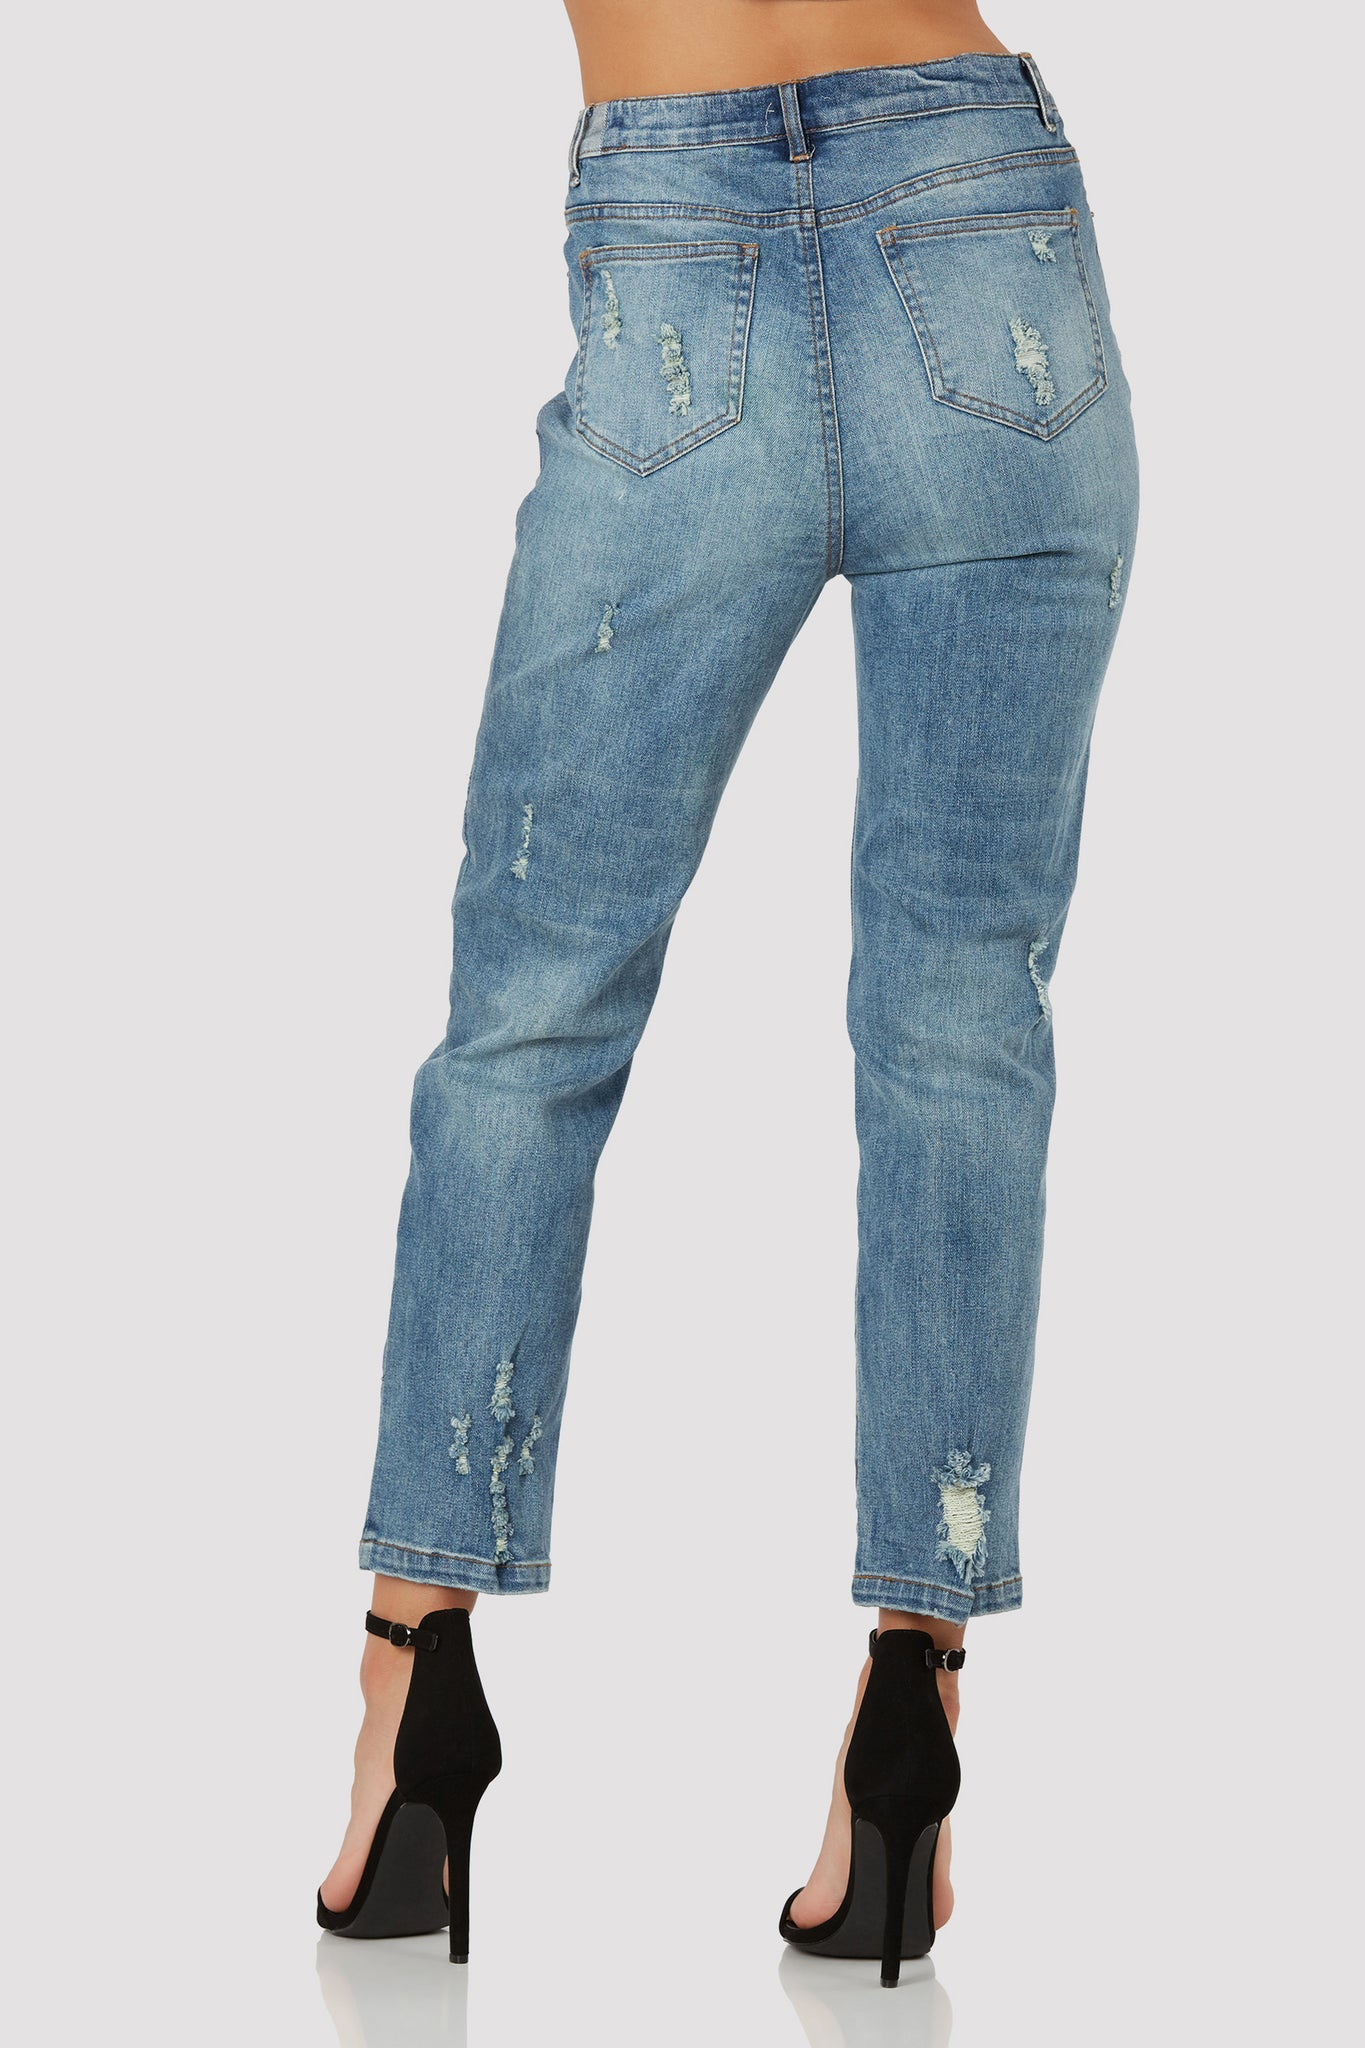 Stylish high rise jeans with bold floral patches in front. 5 pocket design with distressing throughout.